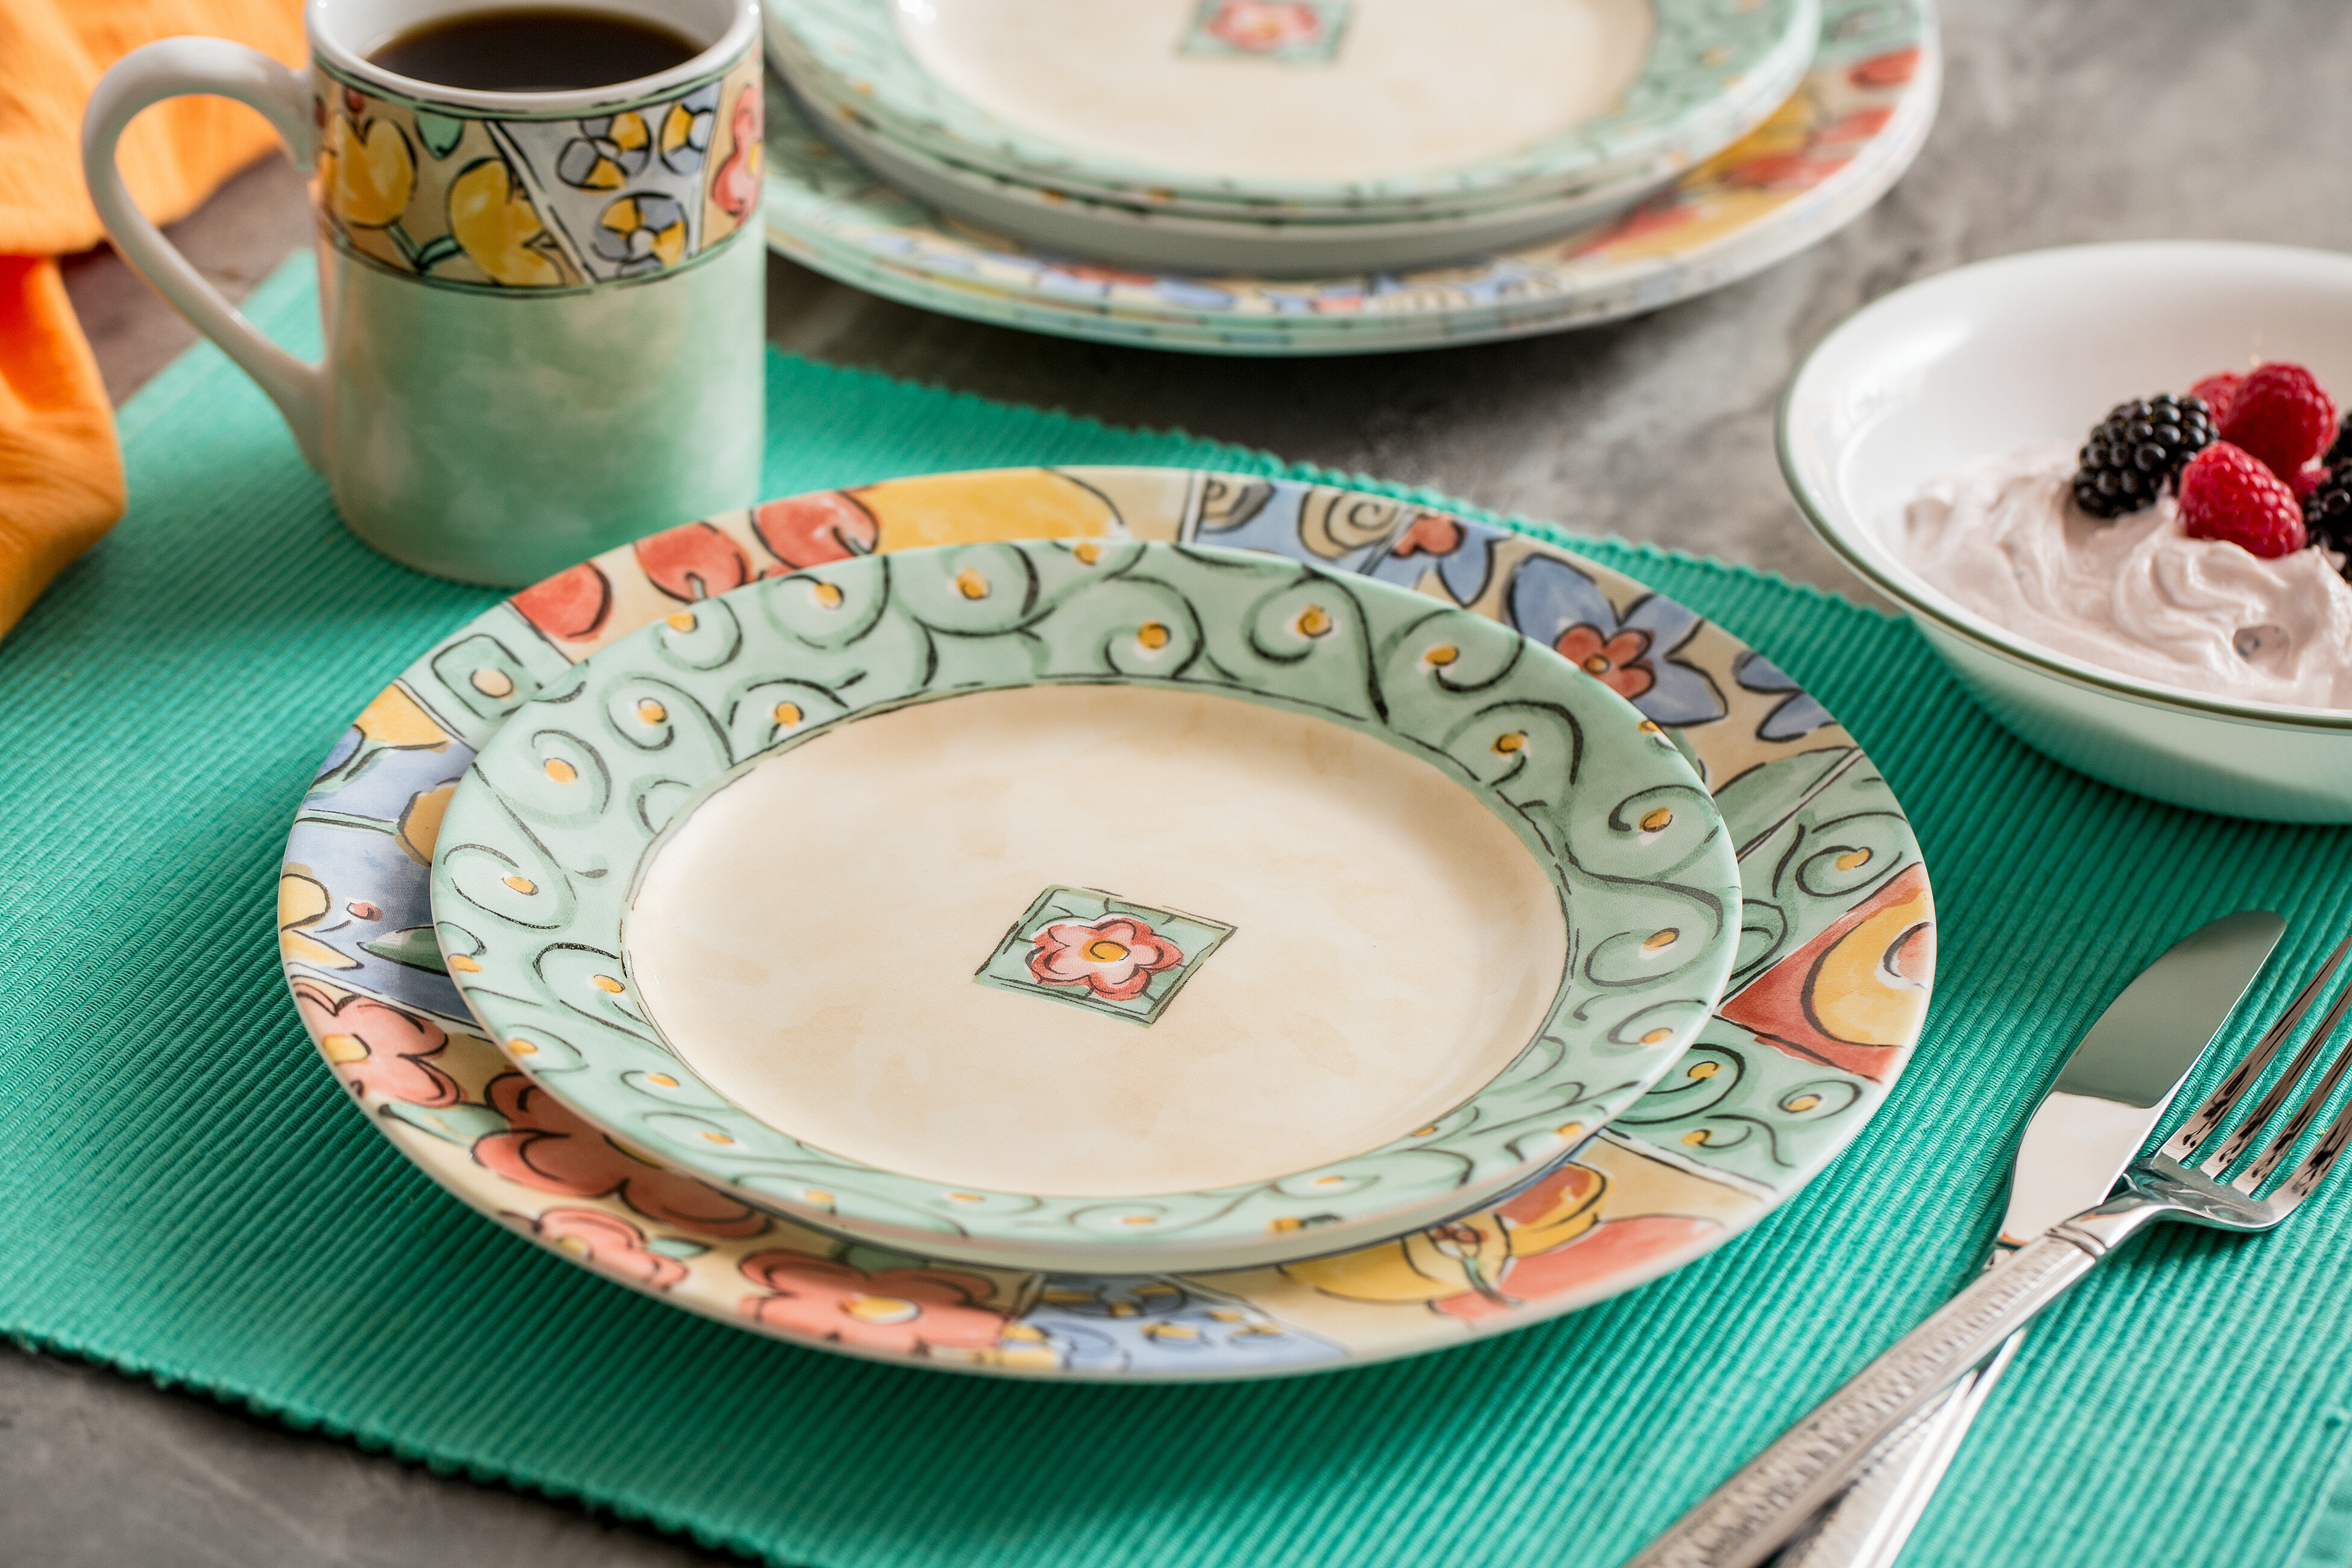 Corelle Impressions Watercolors 16 Piece Dinnerware Set, Service for 4 &  Reviews | Wayfair